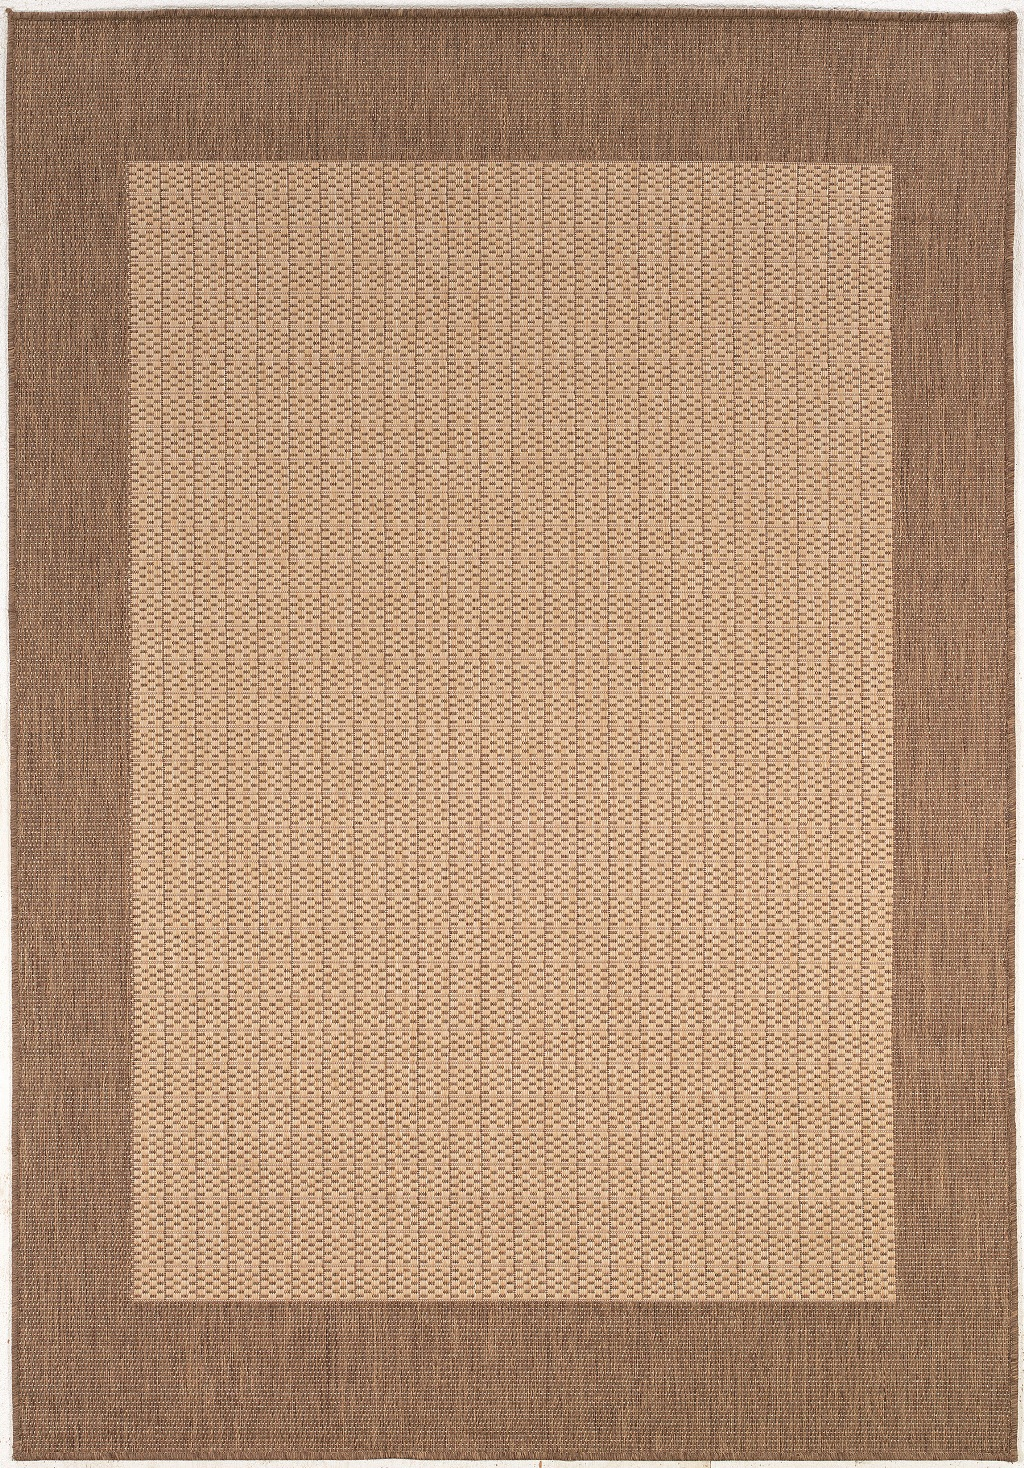 SunSetter Retractable Awnings - Indoor/Outdoor Rugs and Mats